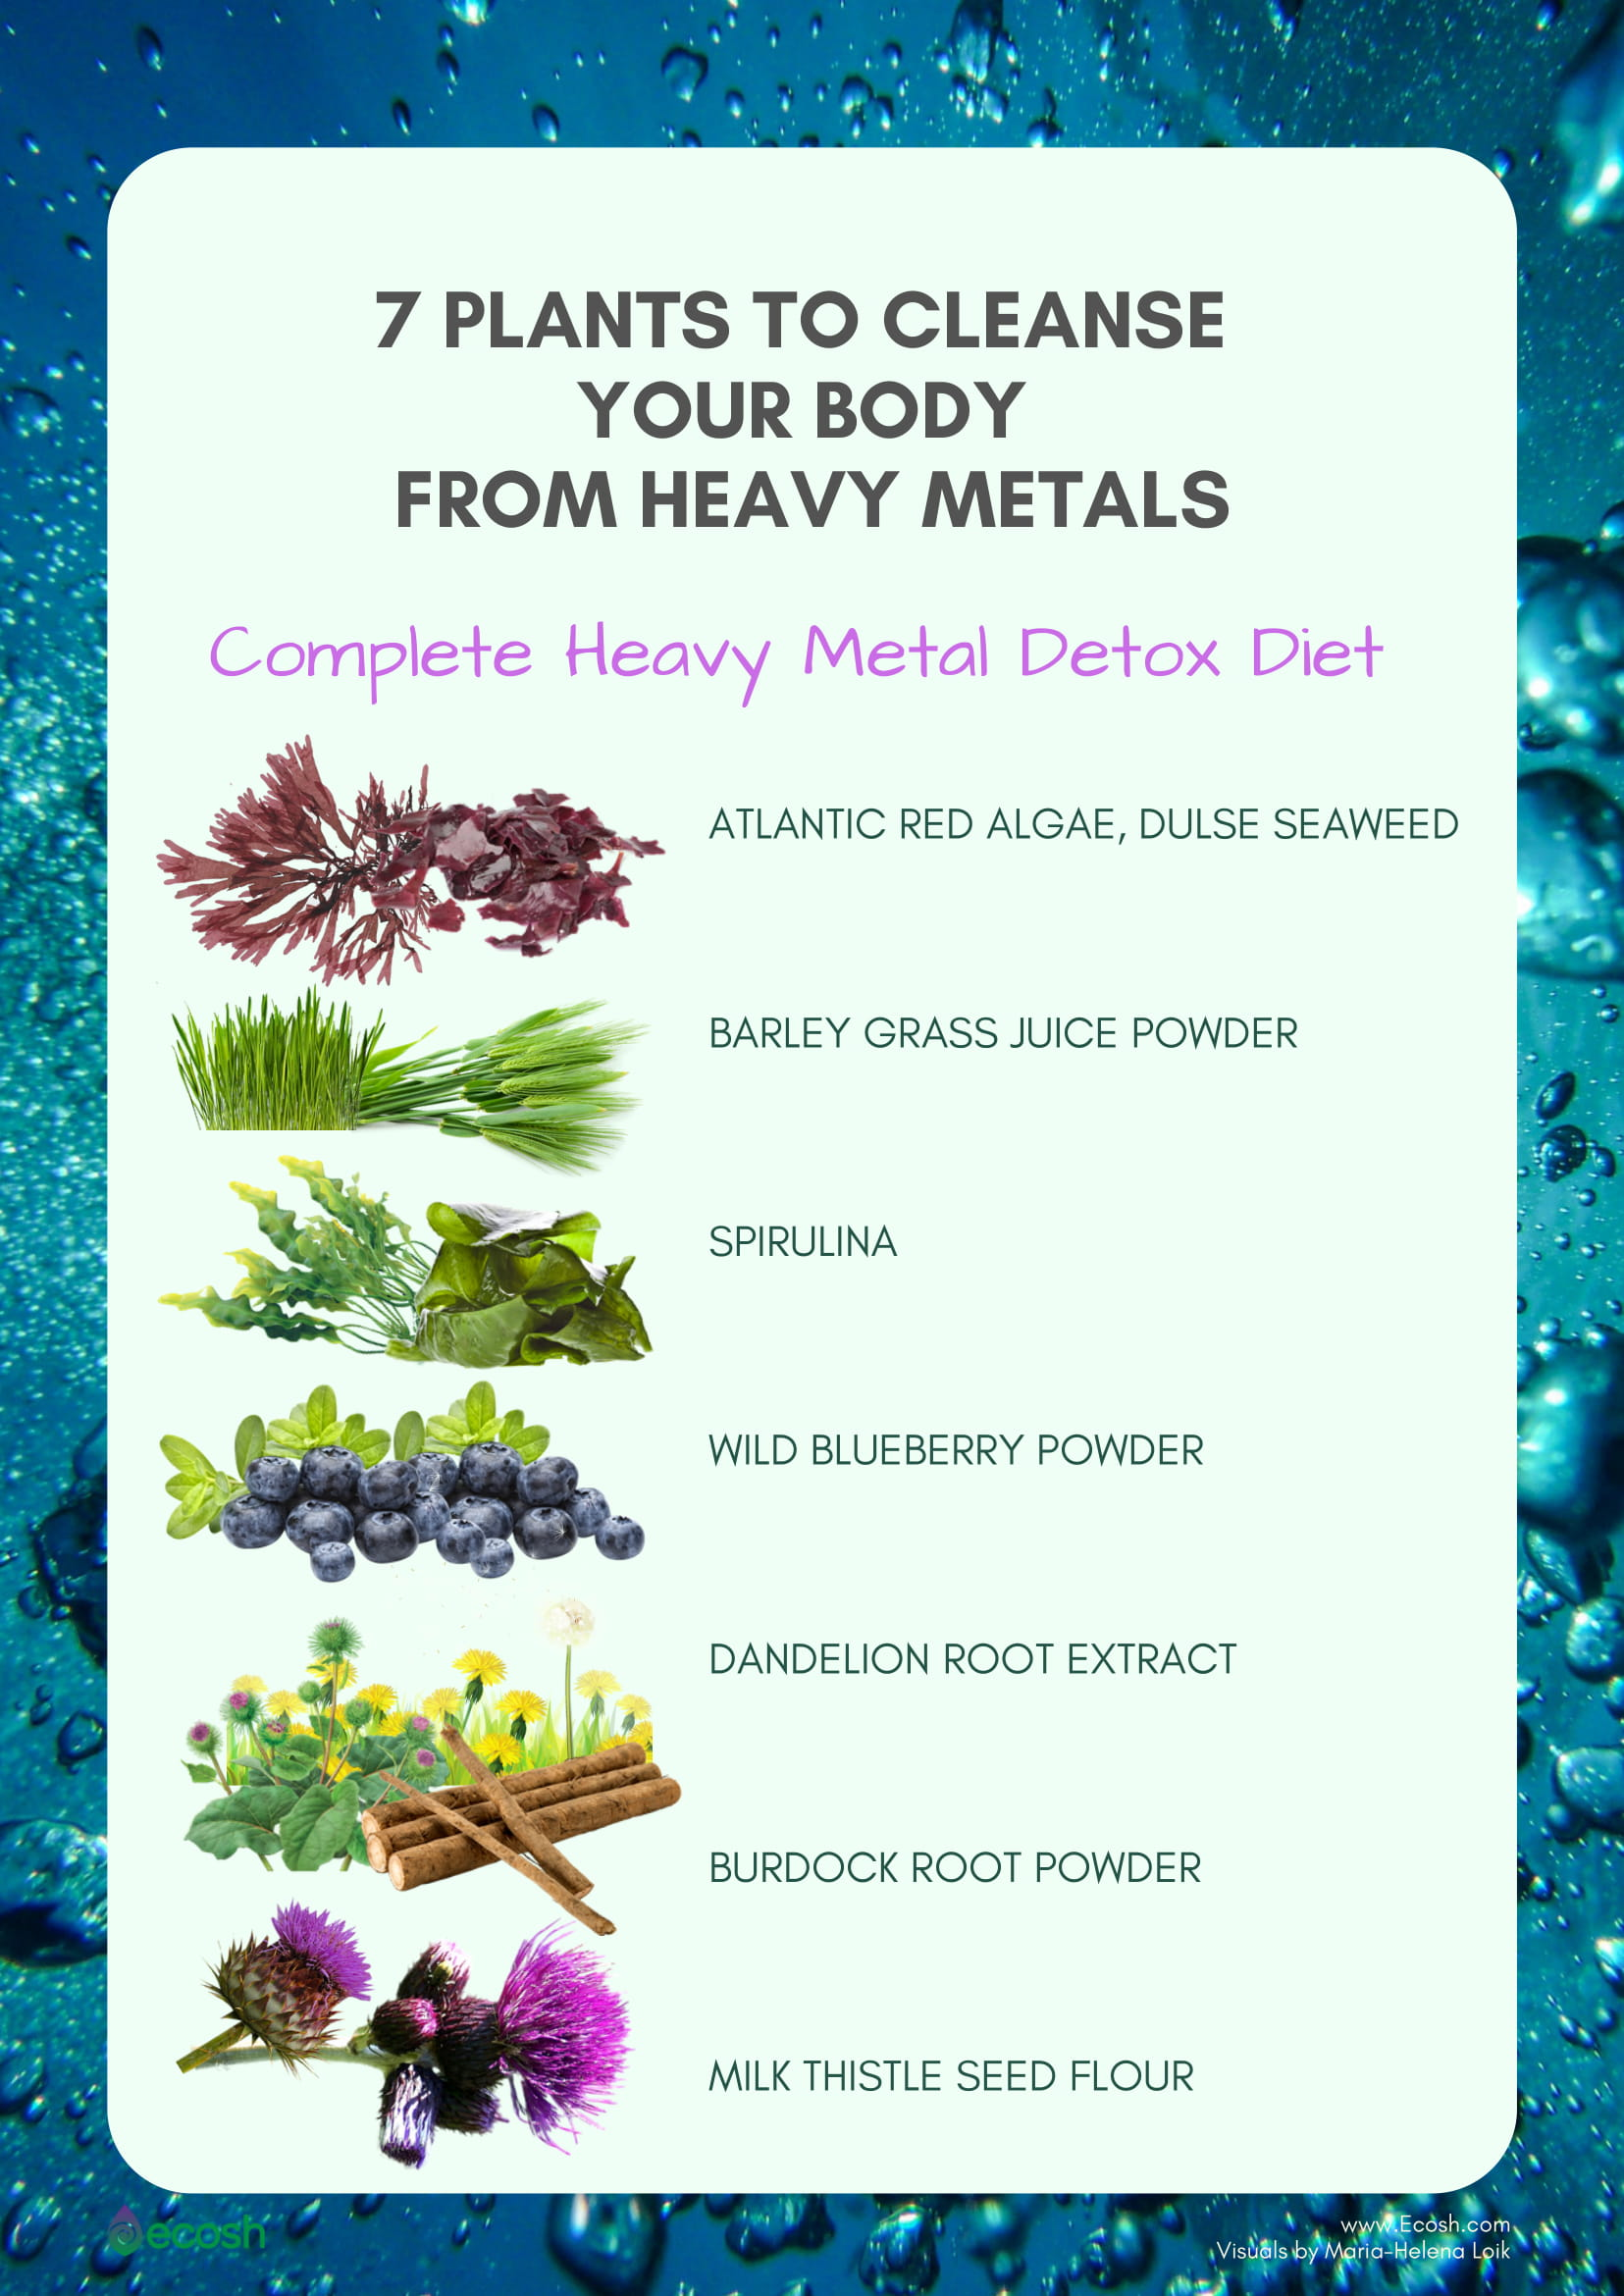 Full Detox - 7 Plants to Cleanse Your Body from Heavy Metals